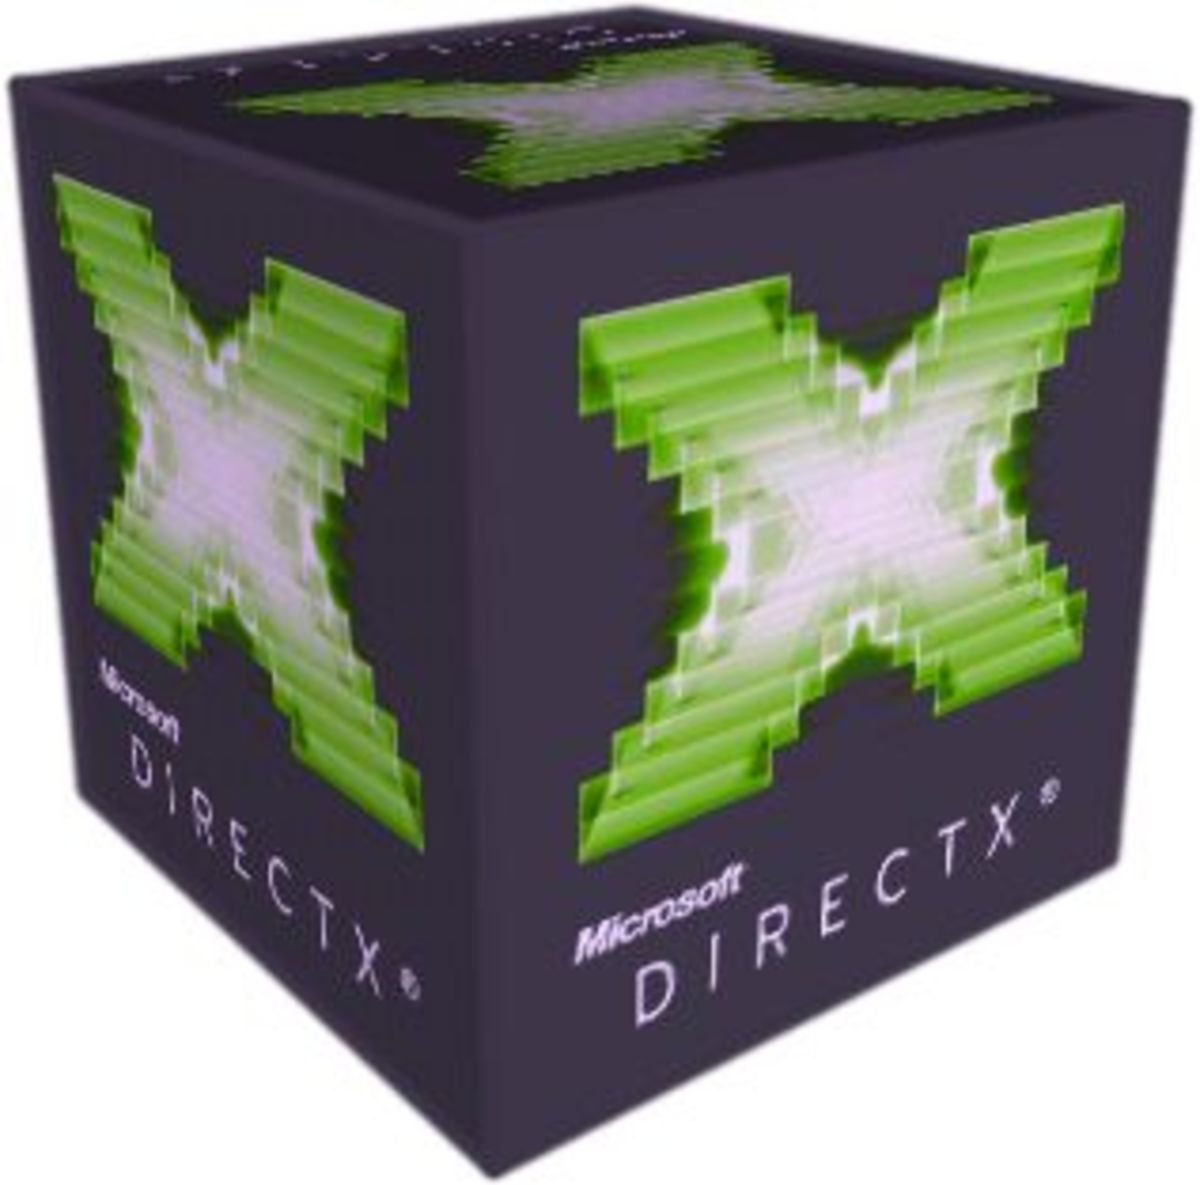 What Is DirectX?